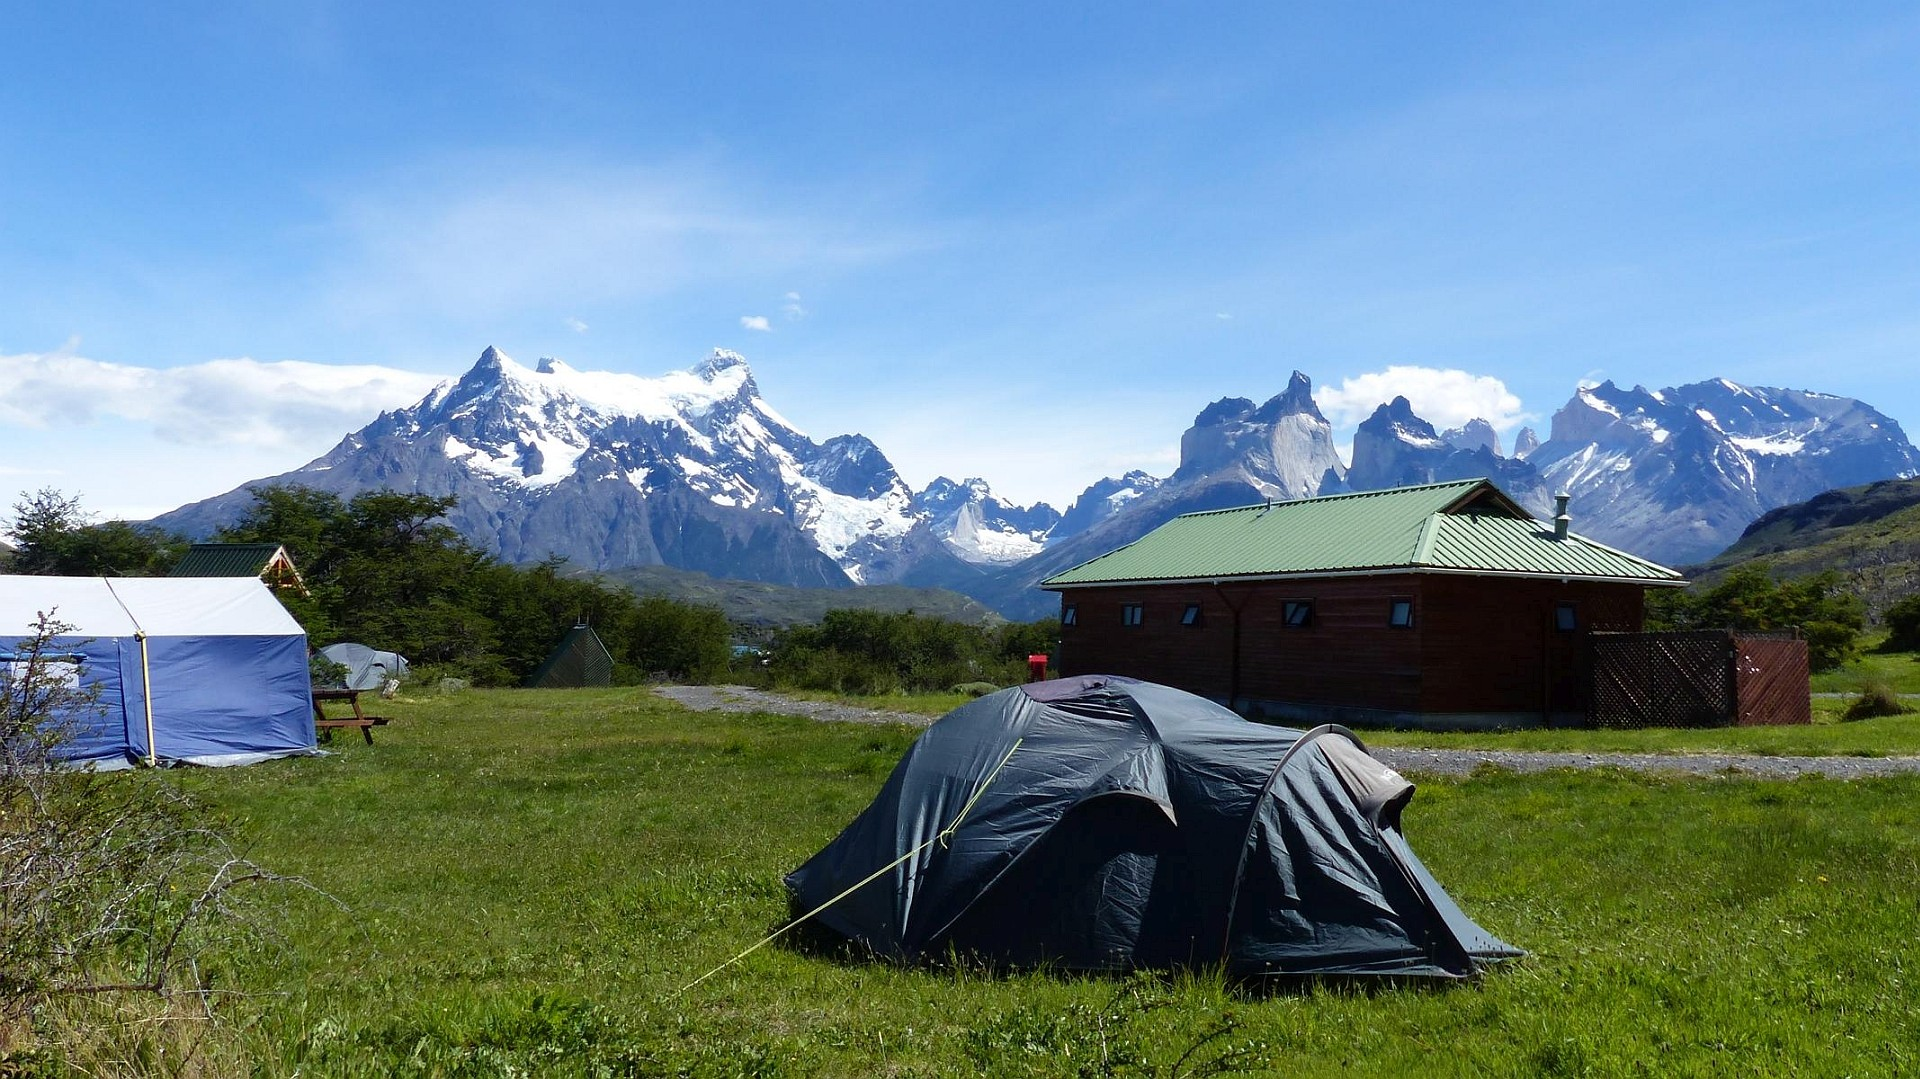 Campingplatz im Nationalpark Torres del Paine in Chile